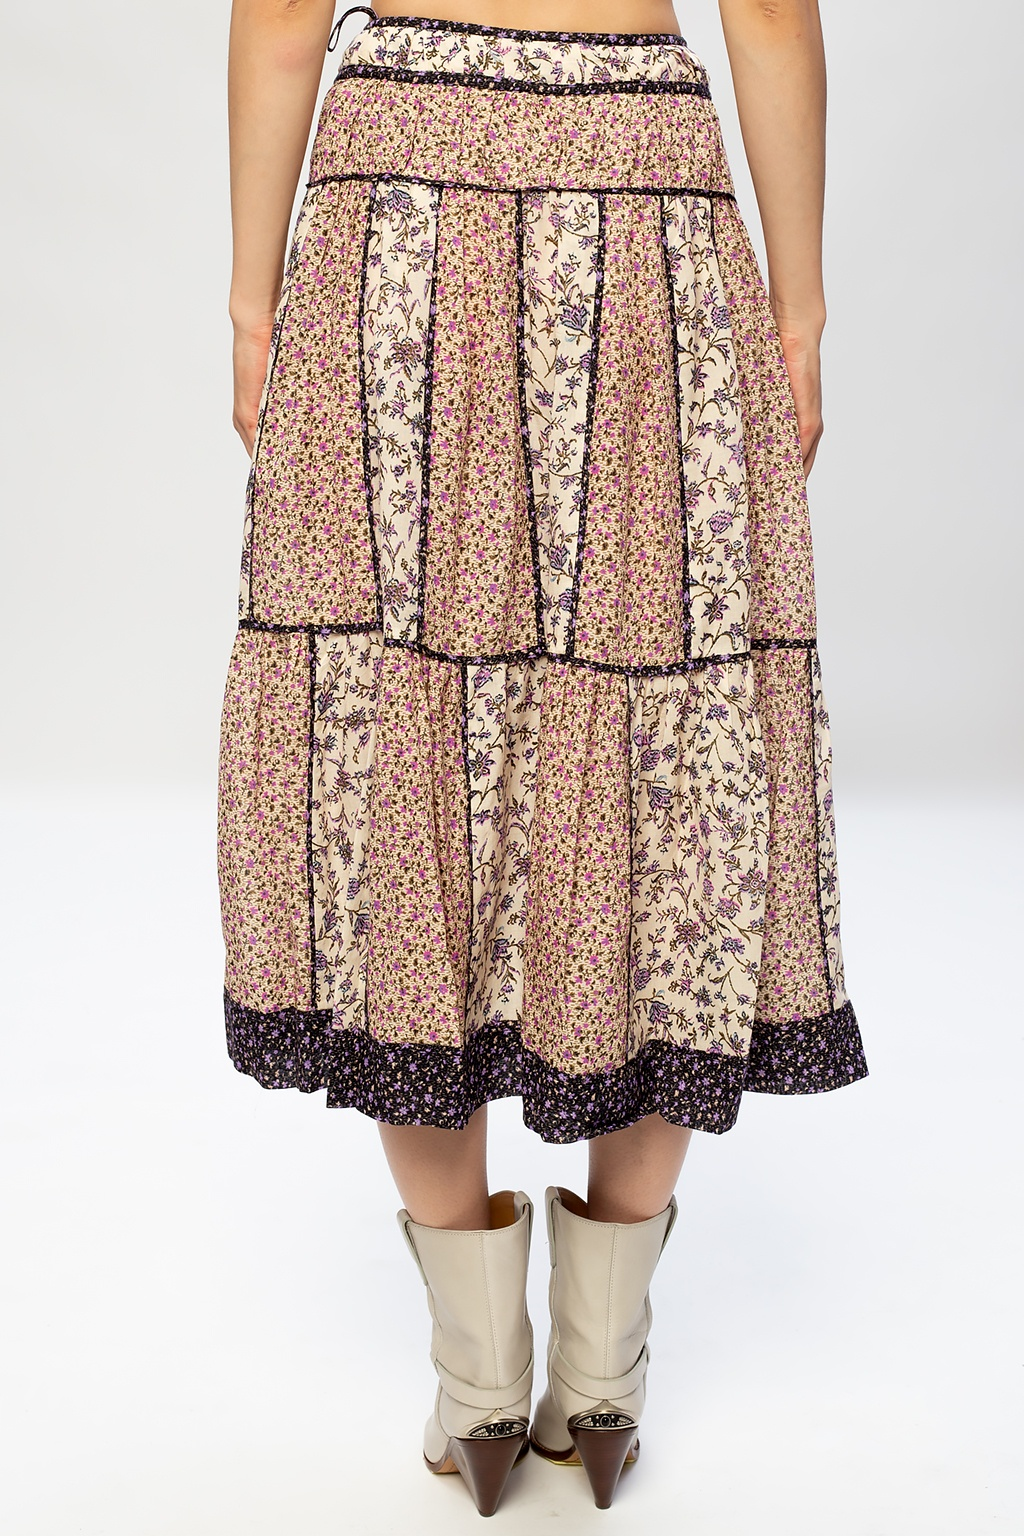 Ulla Johnson 'Josephine' patterned skirt